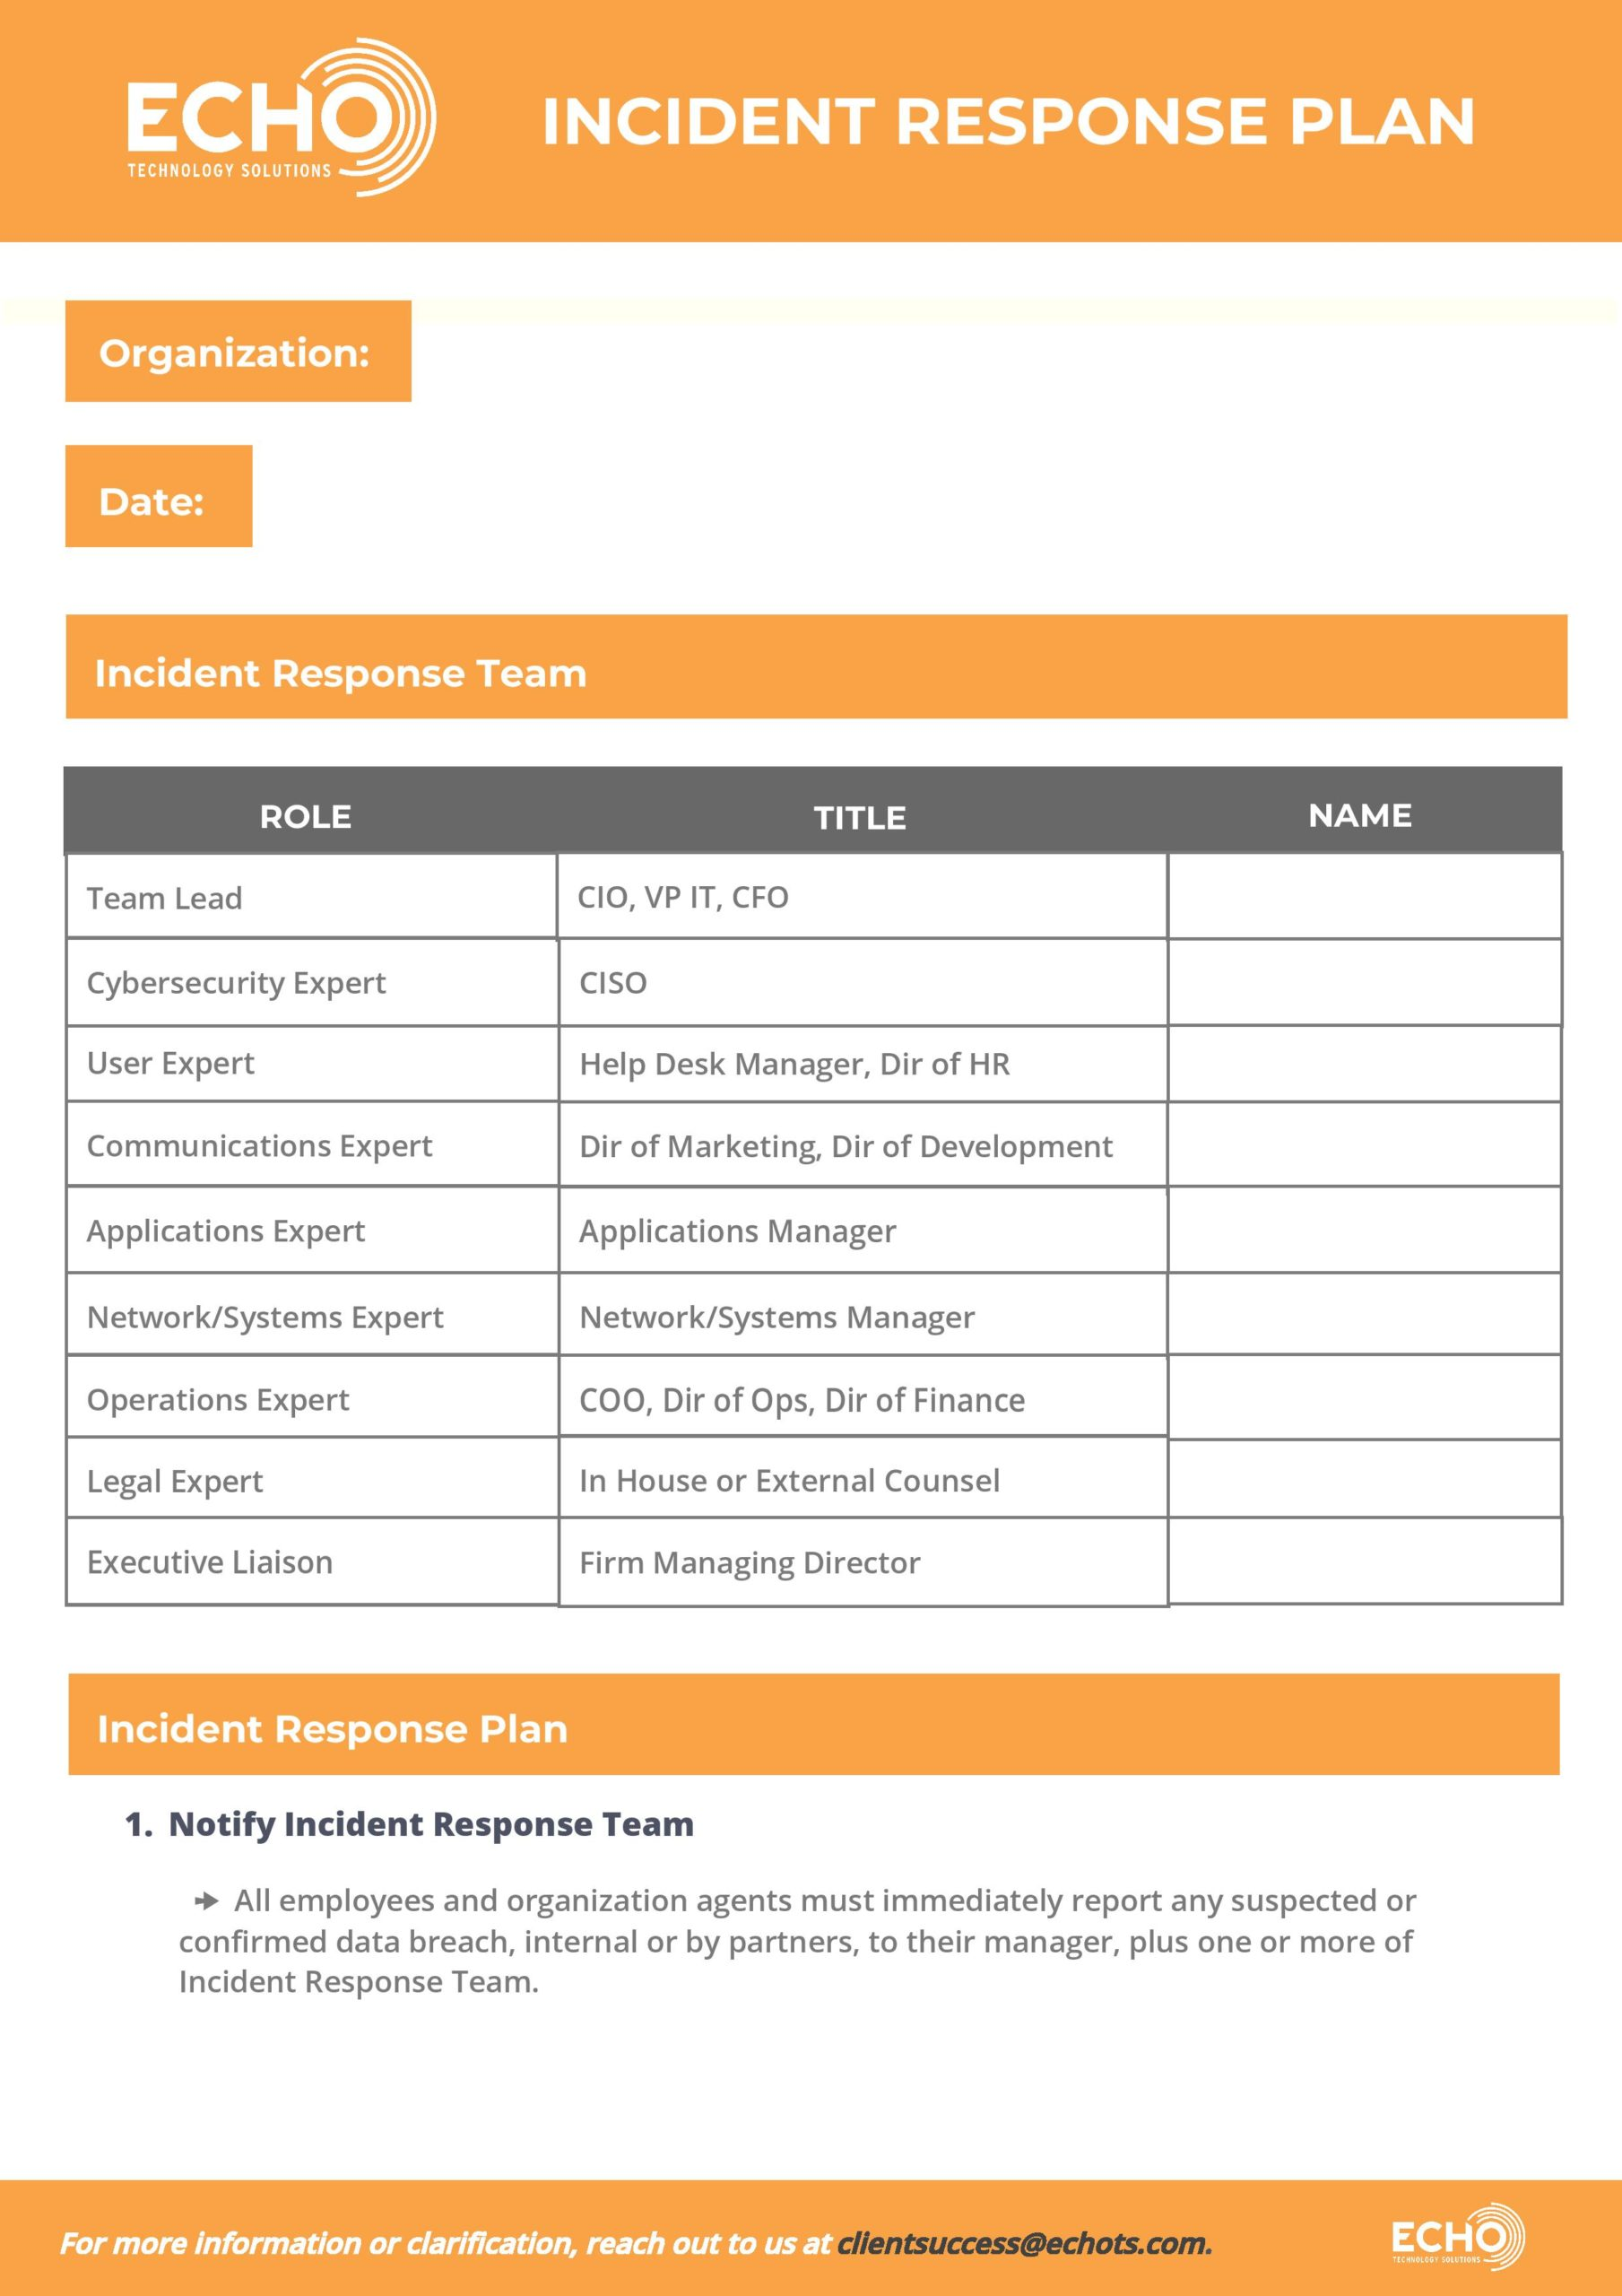 Cybersecurity Incident Response Plan Template Echo Technology Solutions